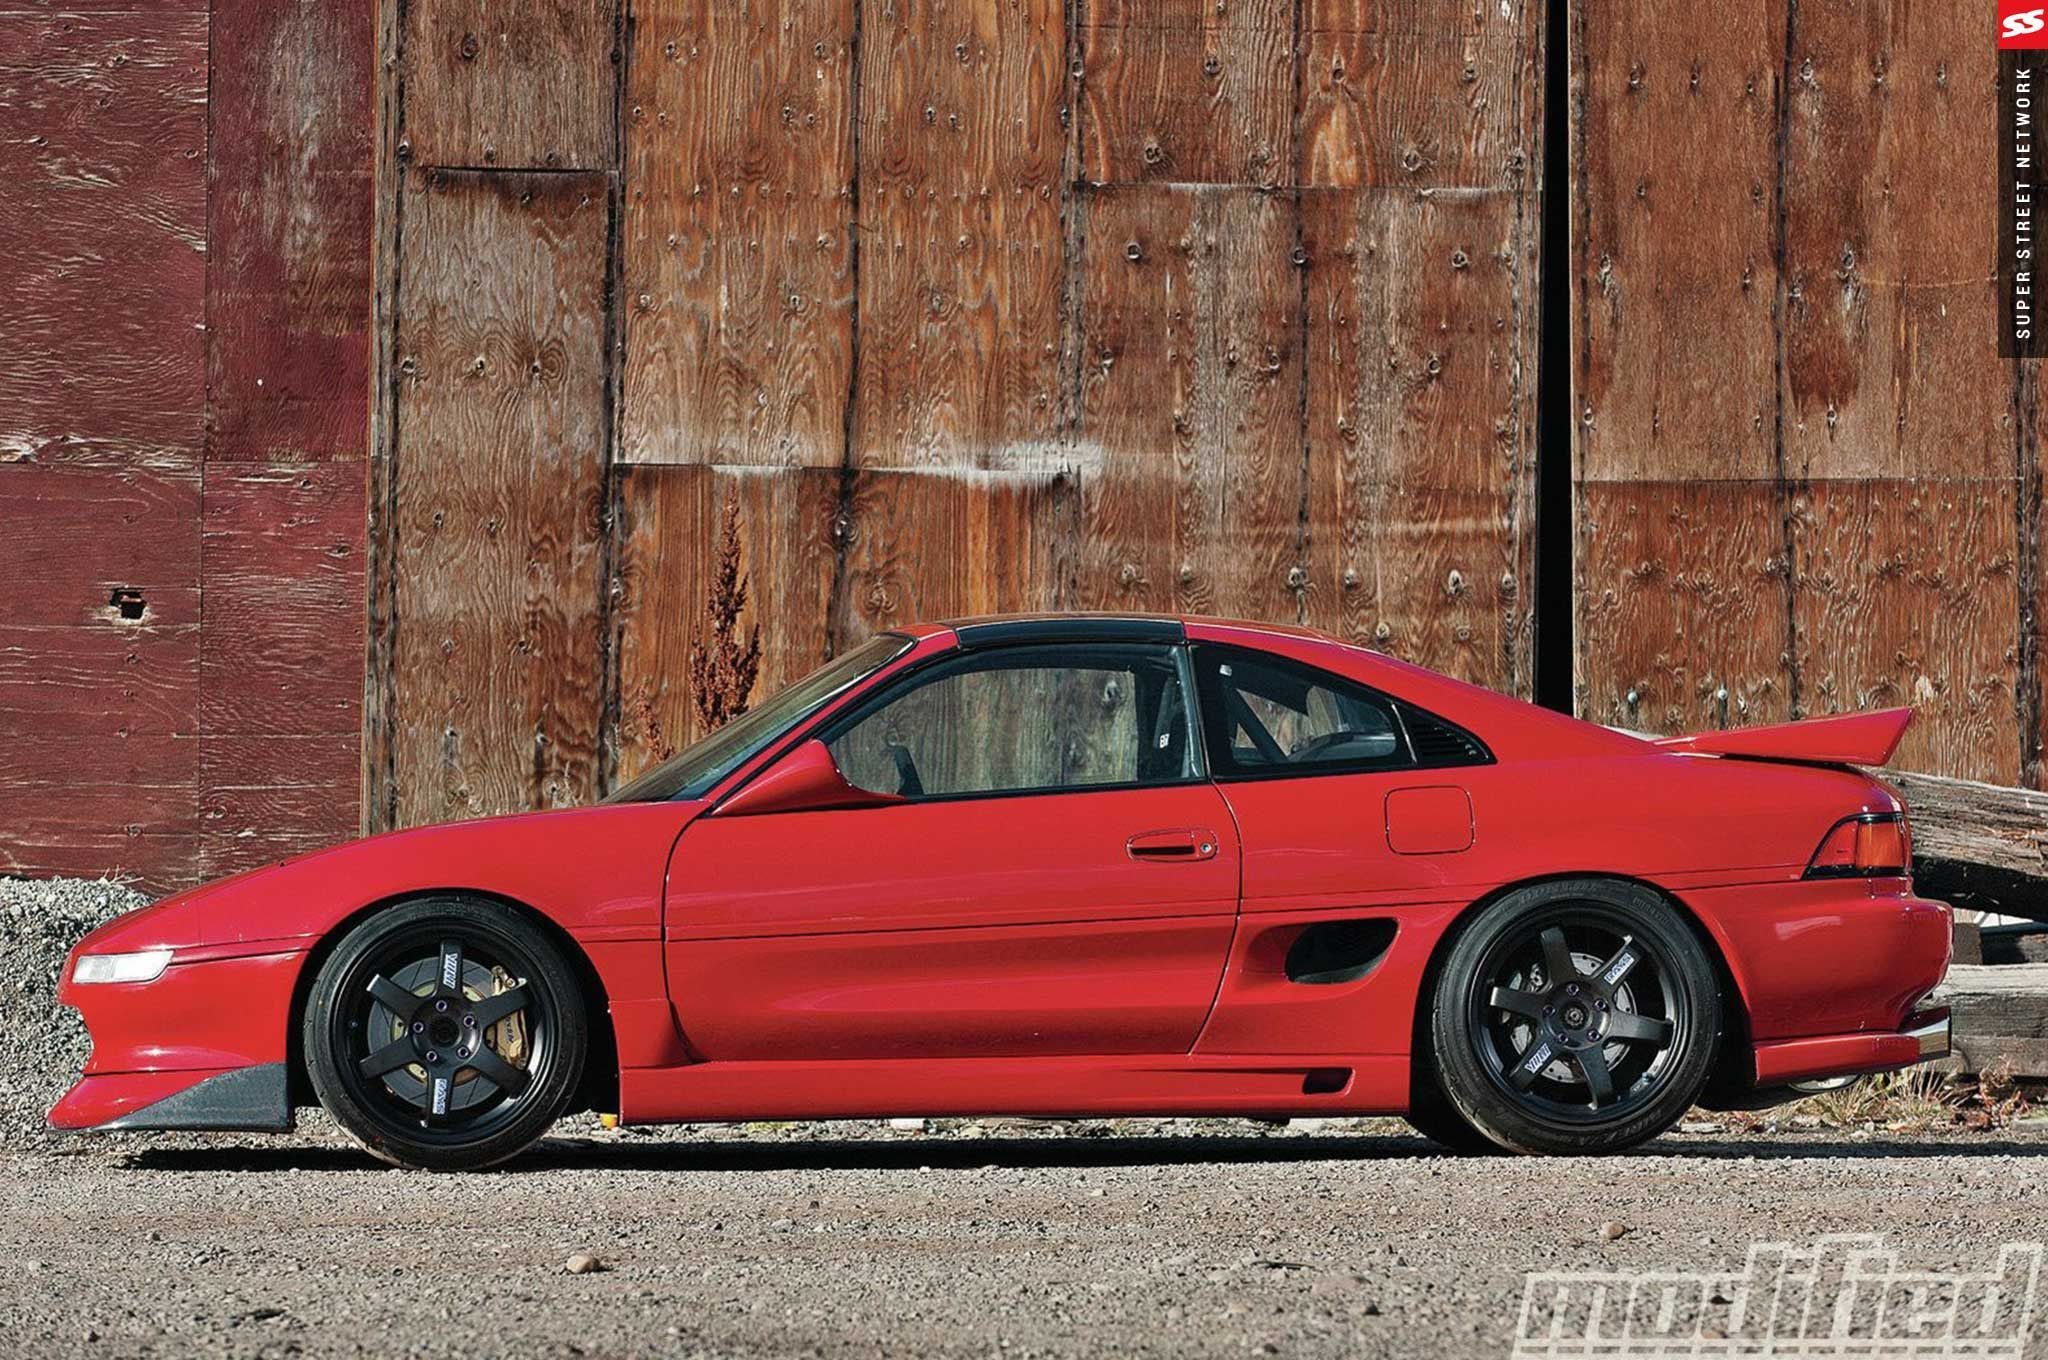 Most Influential Sport Compacts Of The 90s Http Image Superstreetonline Com F 135040706 W H Q80 Re0 Cr1 Ar0 St0 1991 1995 To Toyota Mr2 Toyota Cars Toyota